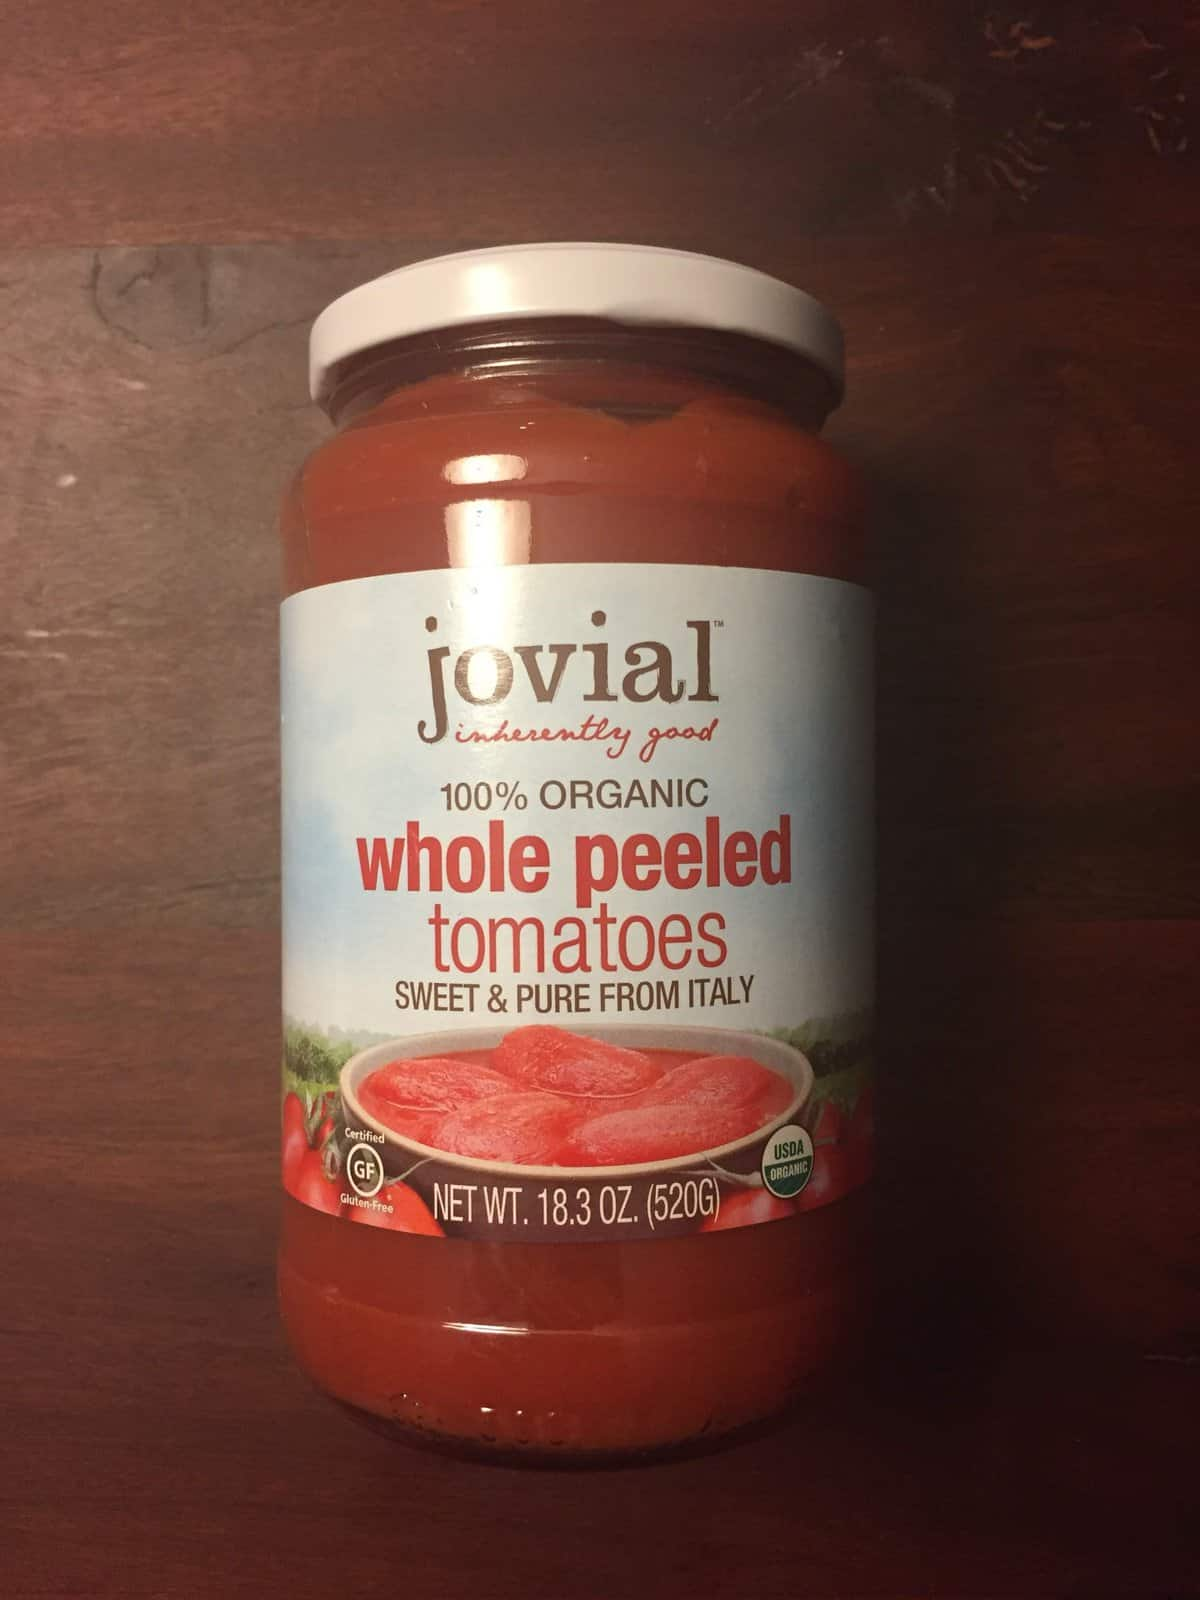 Jovial Organic Whole Peeled Tomatoes